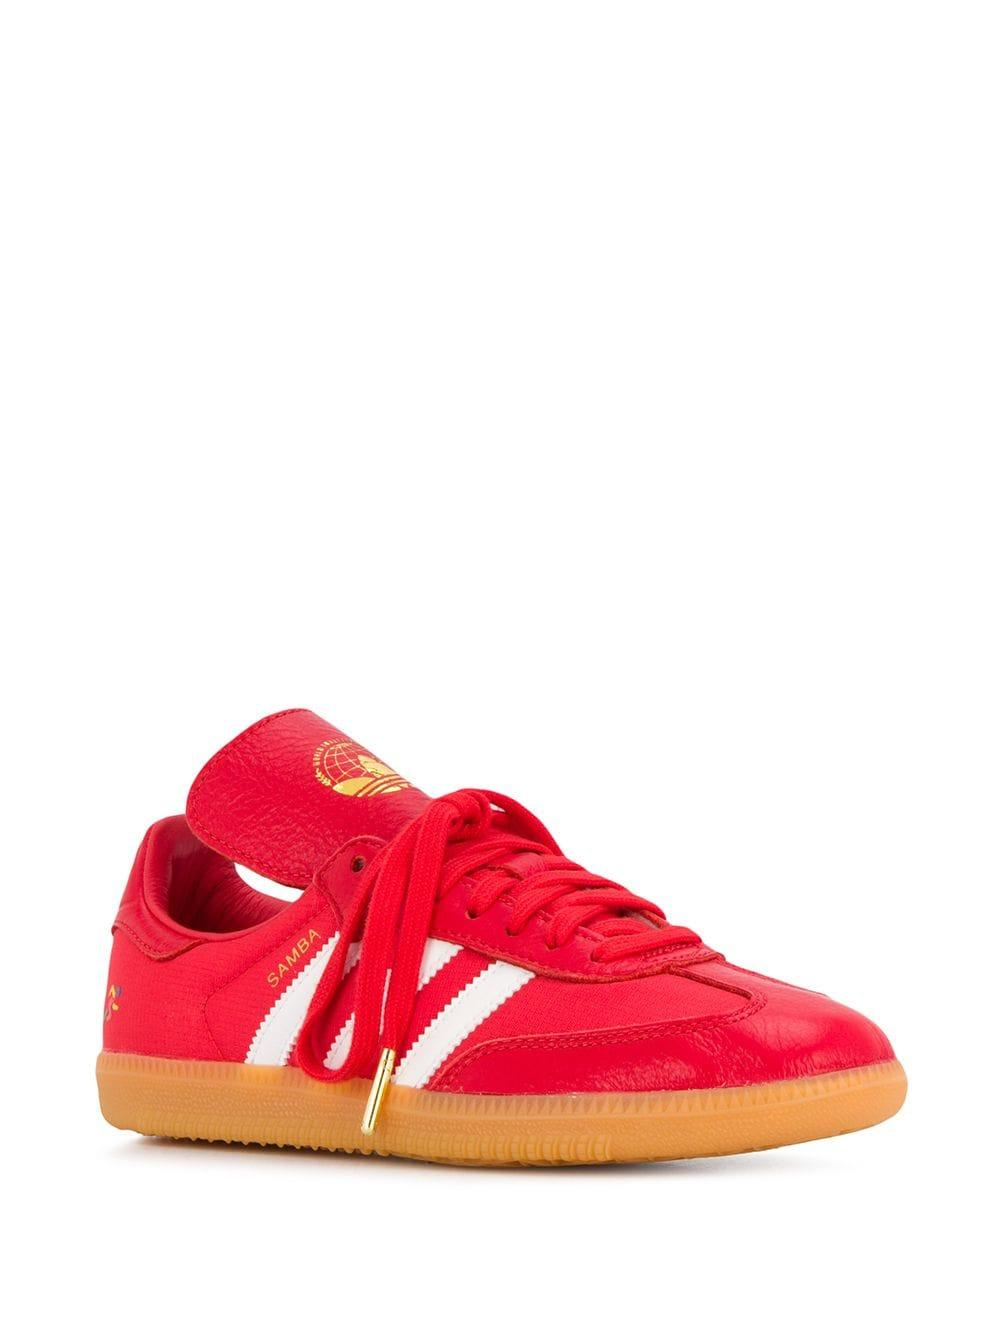 adidas Samba Leather Trainers in Red - Lyst